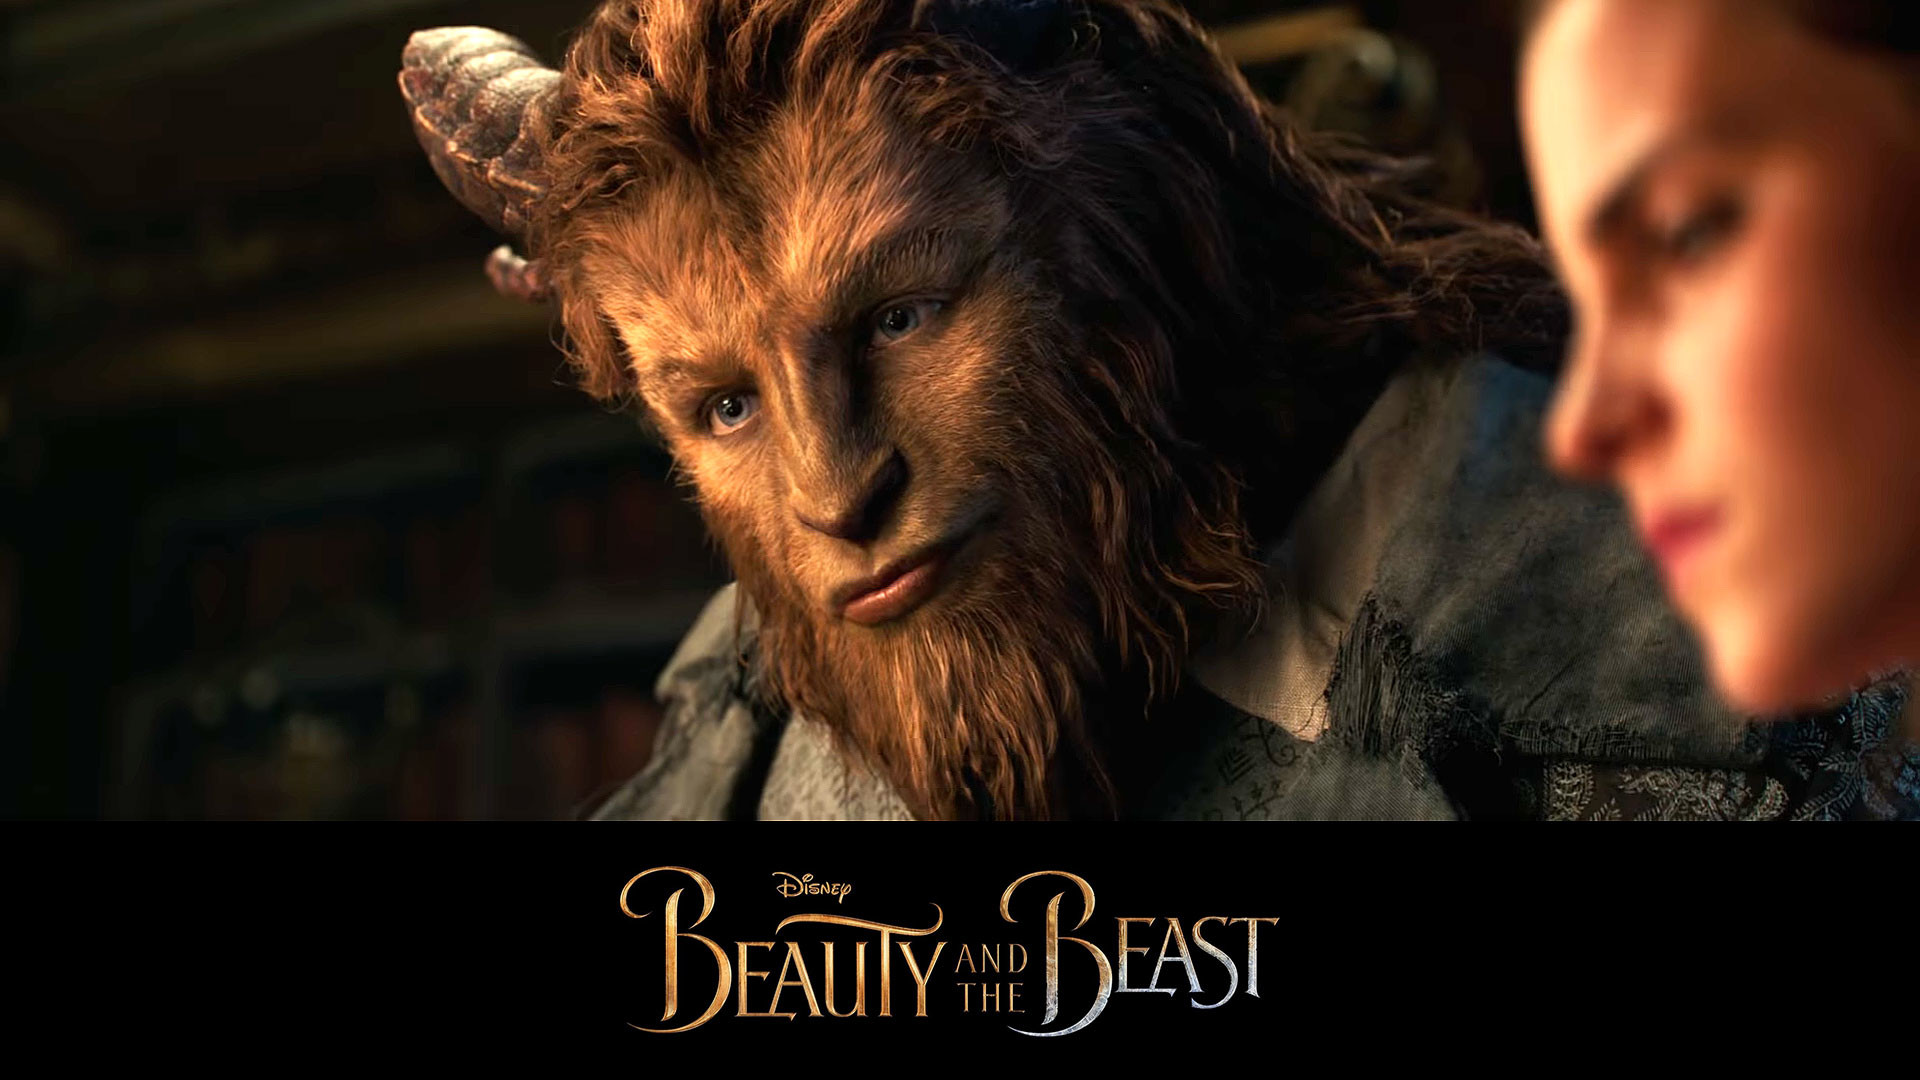 Beauty-and-the-Beast-Movie-Wallpaper-HD-14